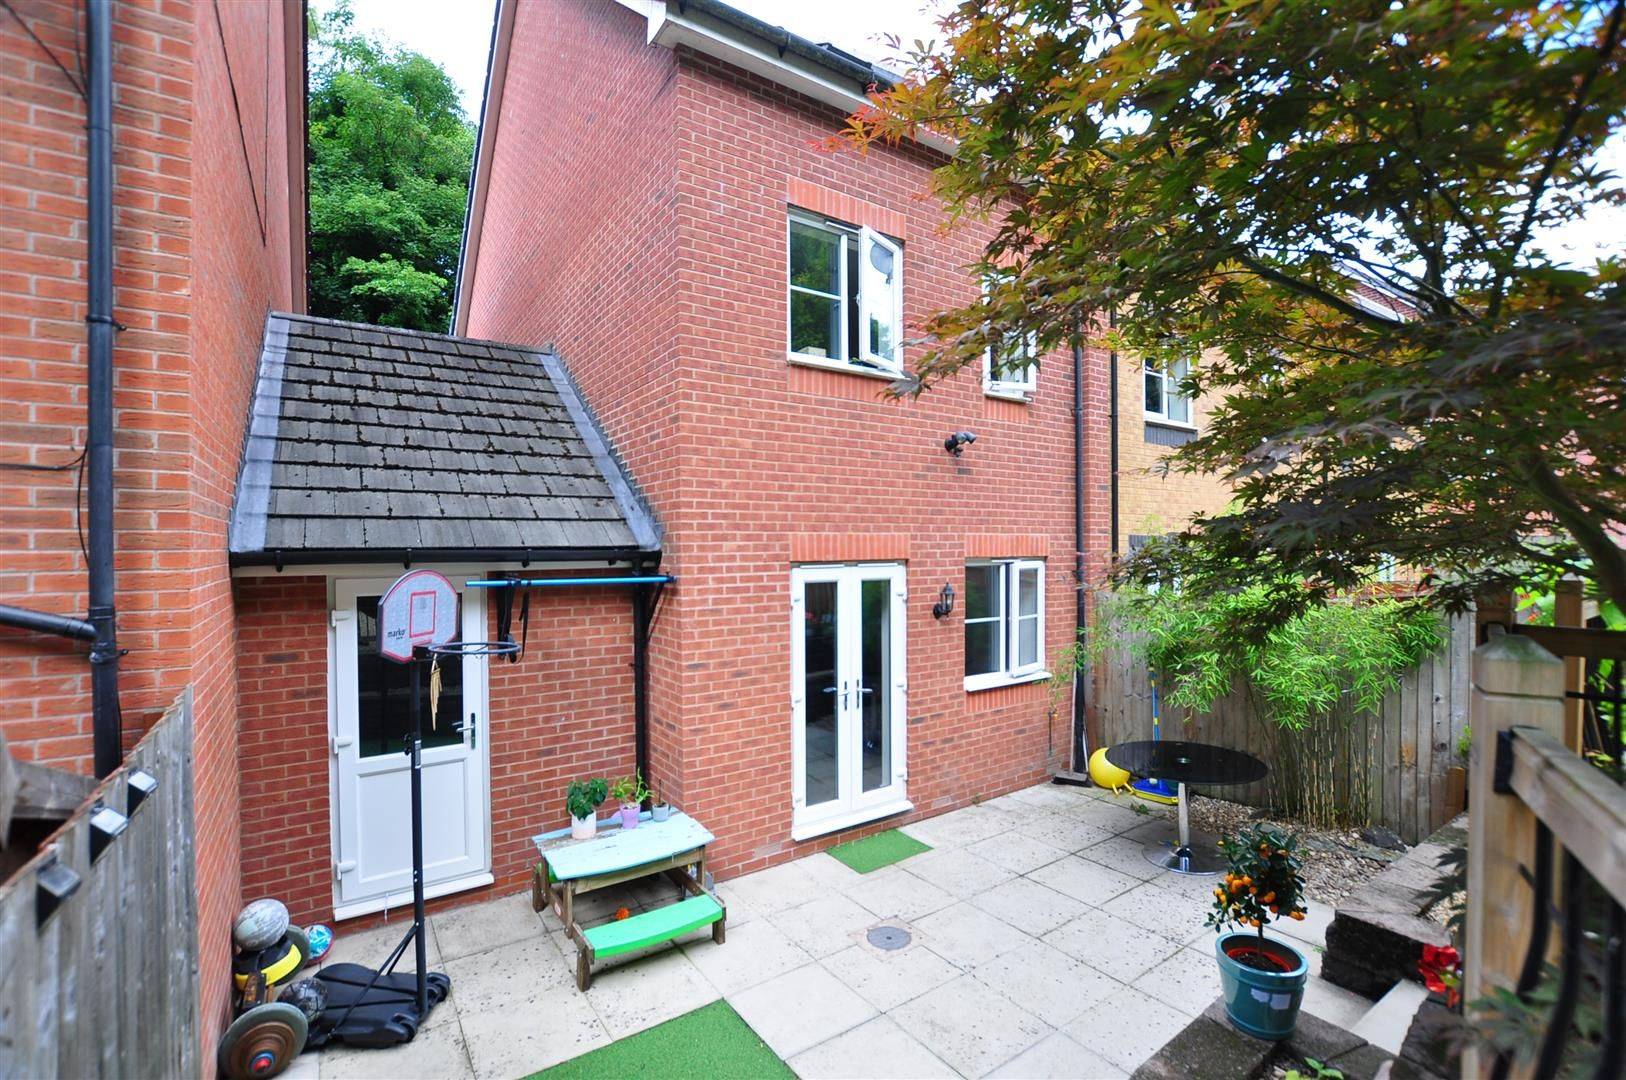 4 bed end-of-terrace for sale  - Property Image 19